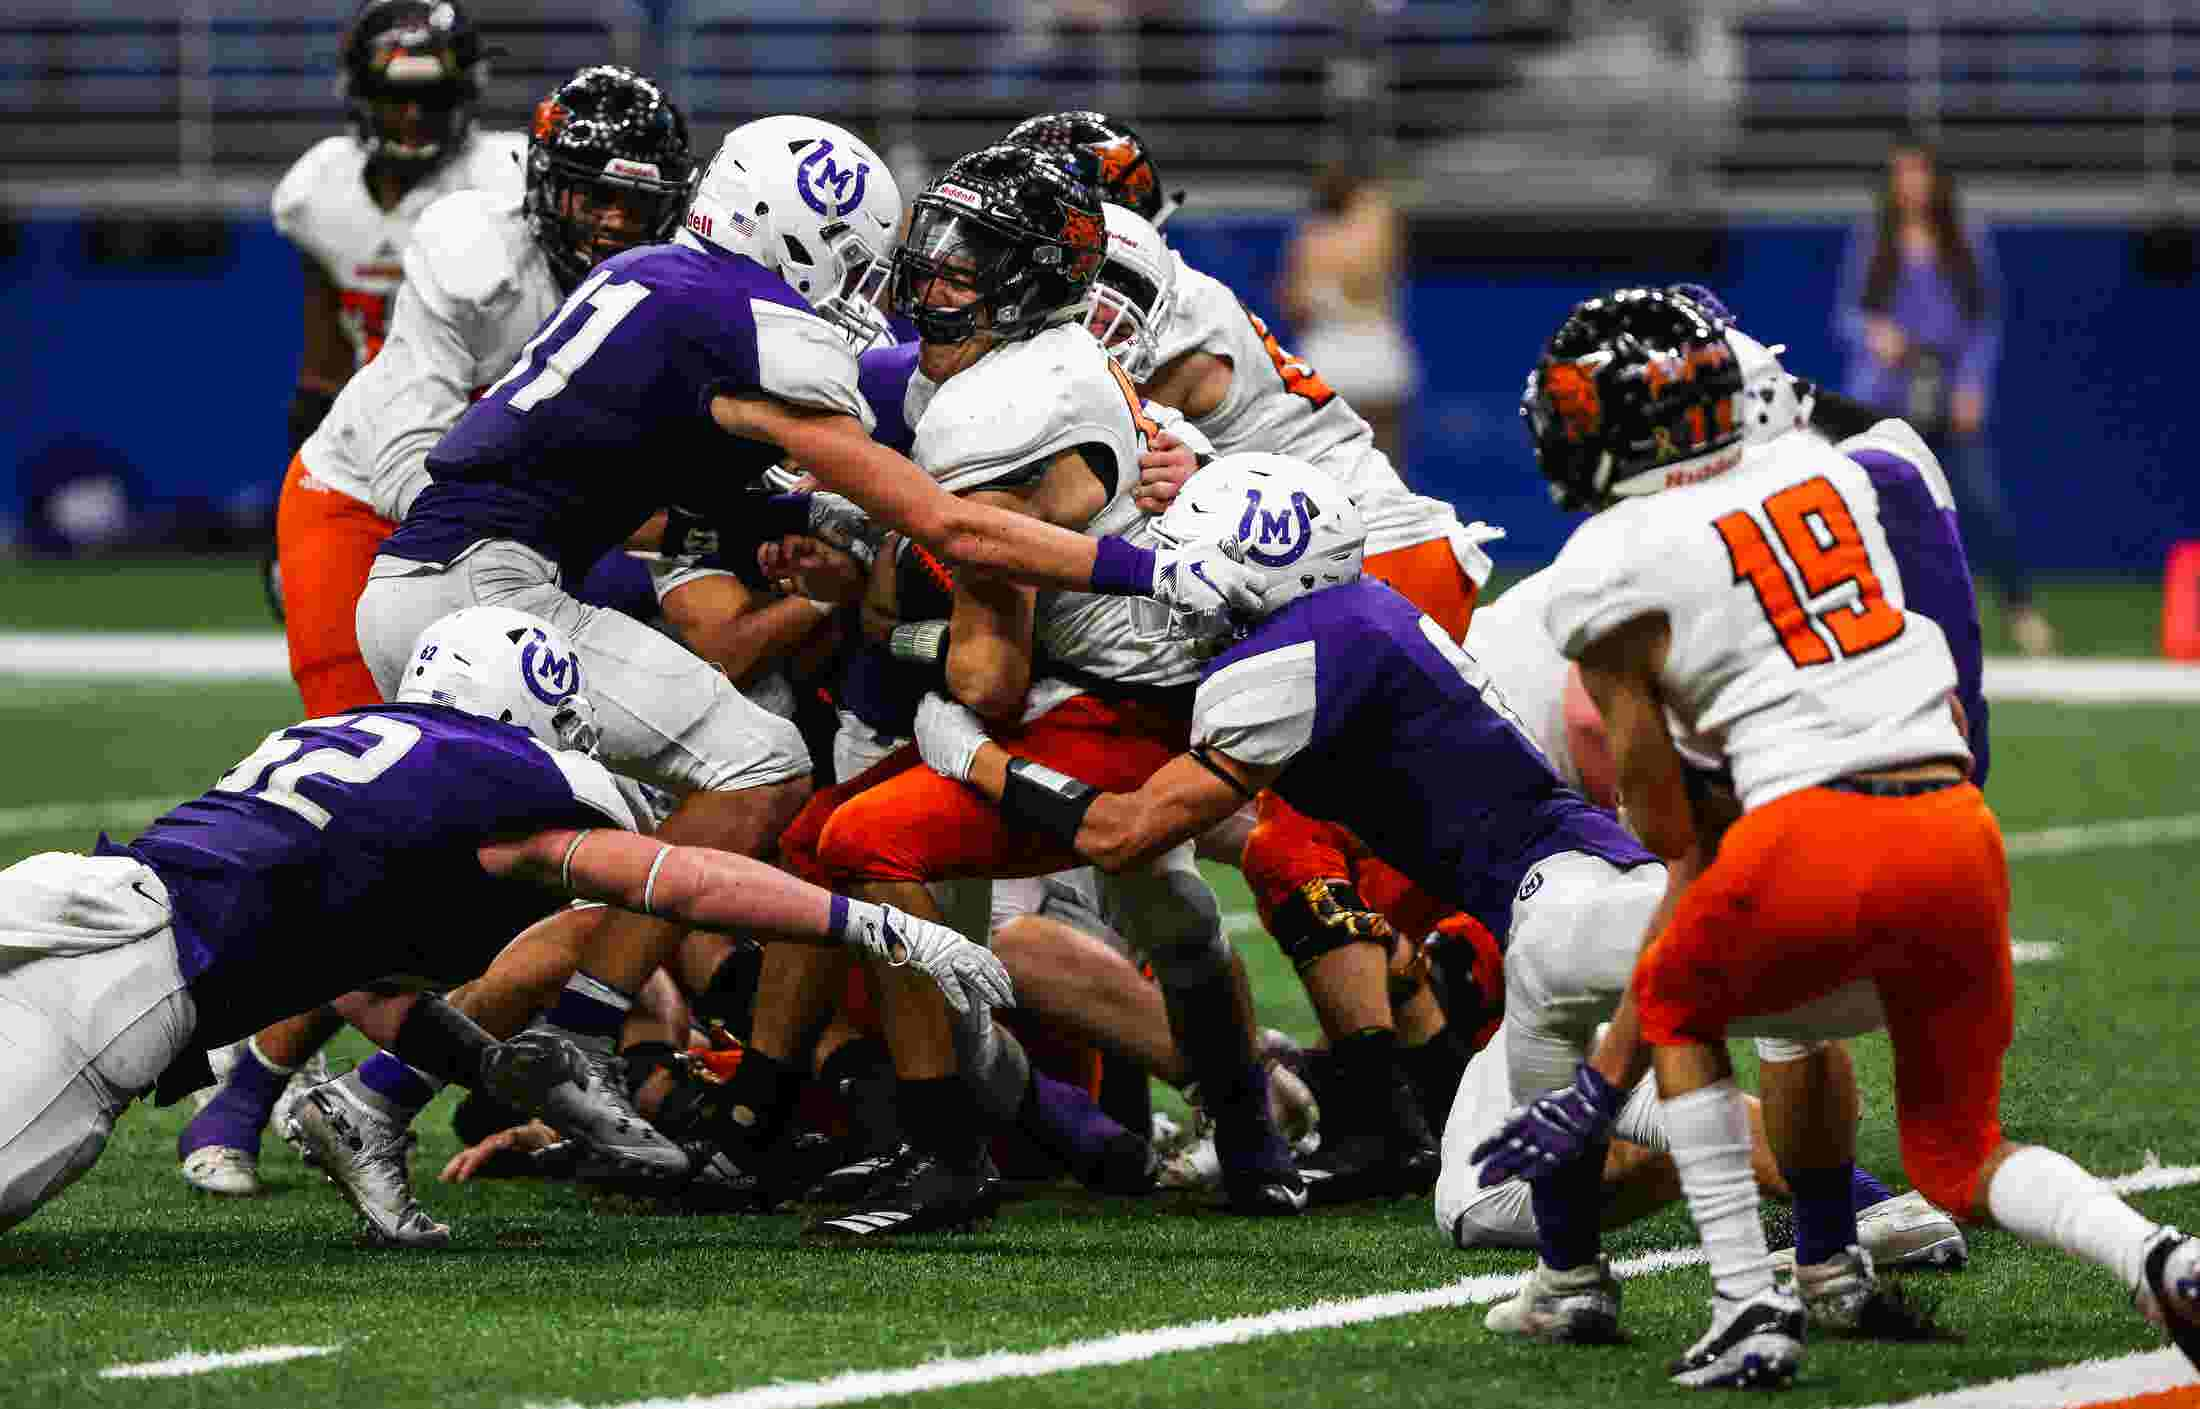 Goal Line Stand Leads Mason Past Refugio In Class 2a State Quarters